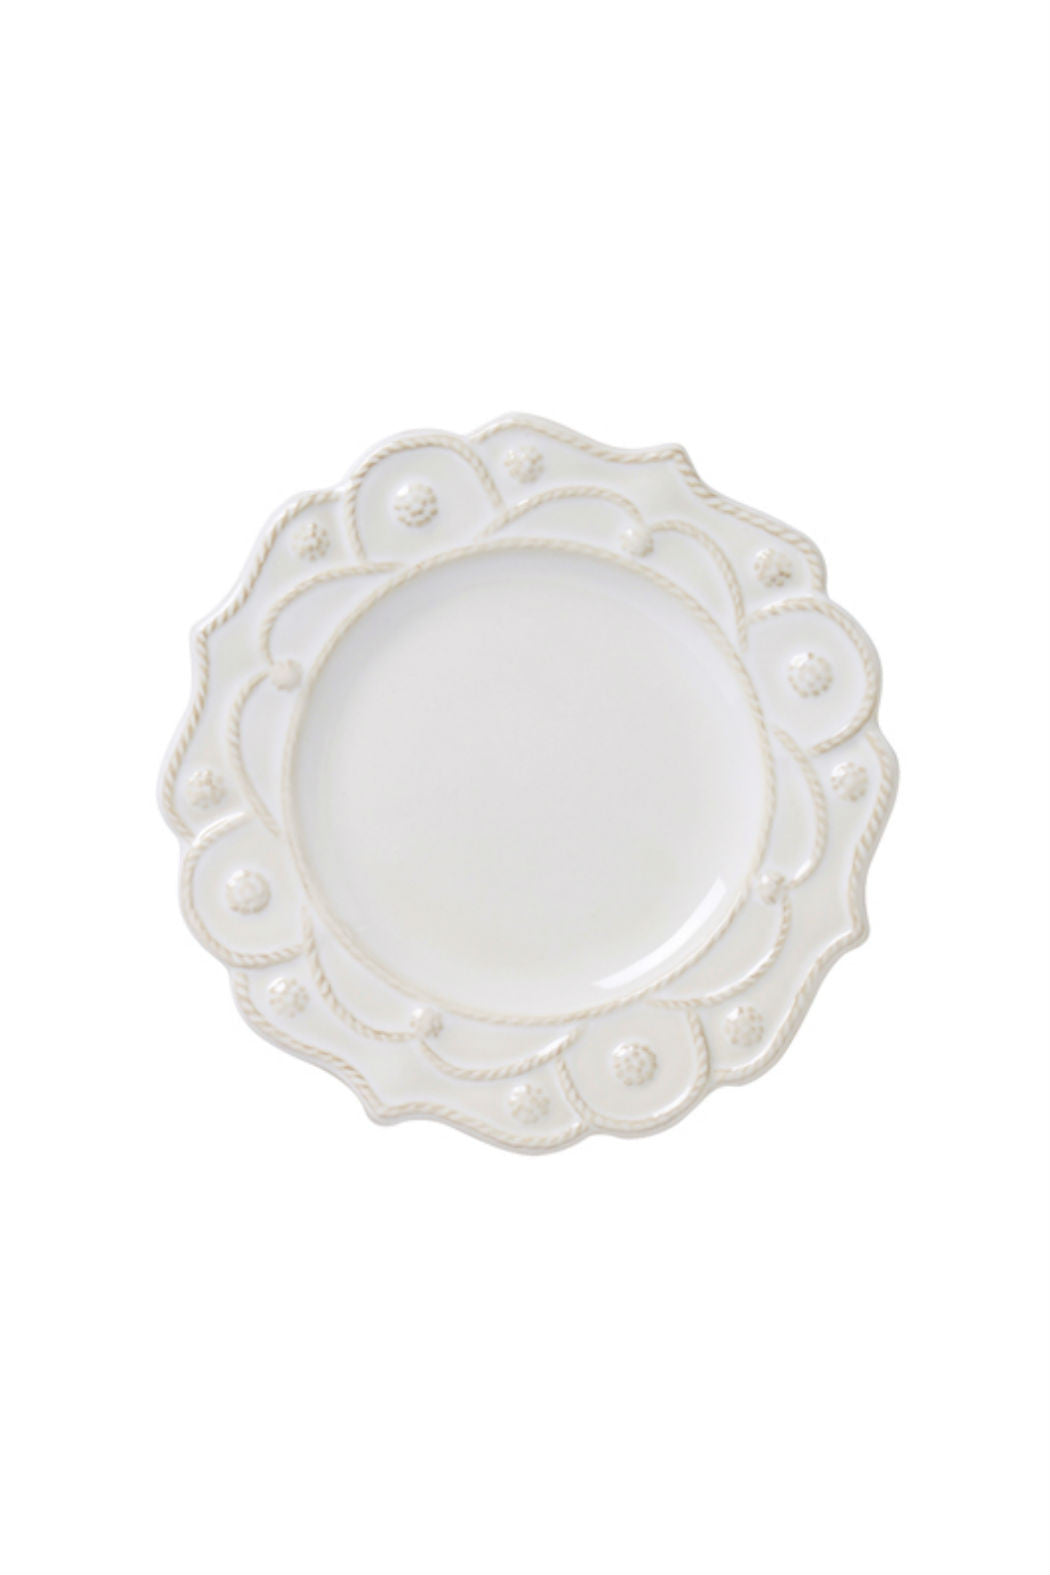 Juliska Jardins du Monde Whitewash Side Plate - New Orientation